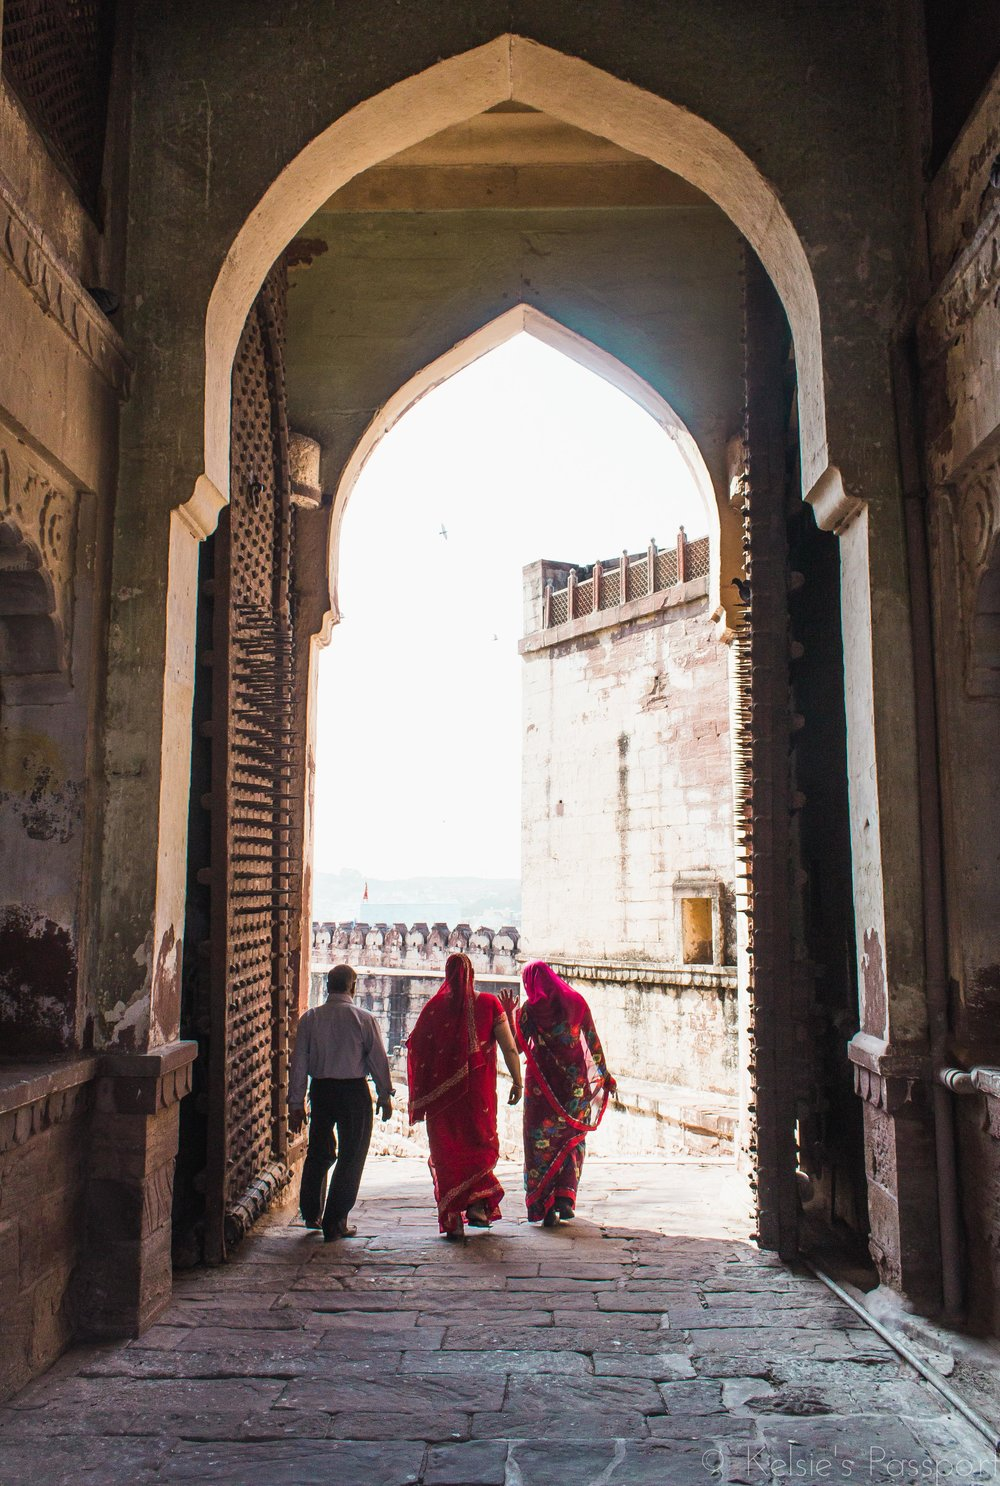 After a visit to the Mehrangarh Fort.